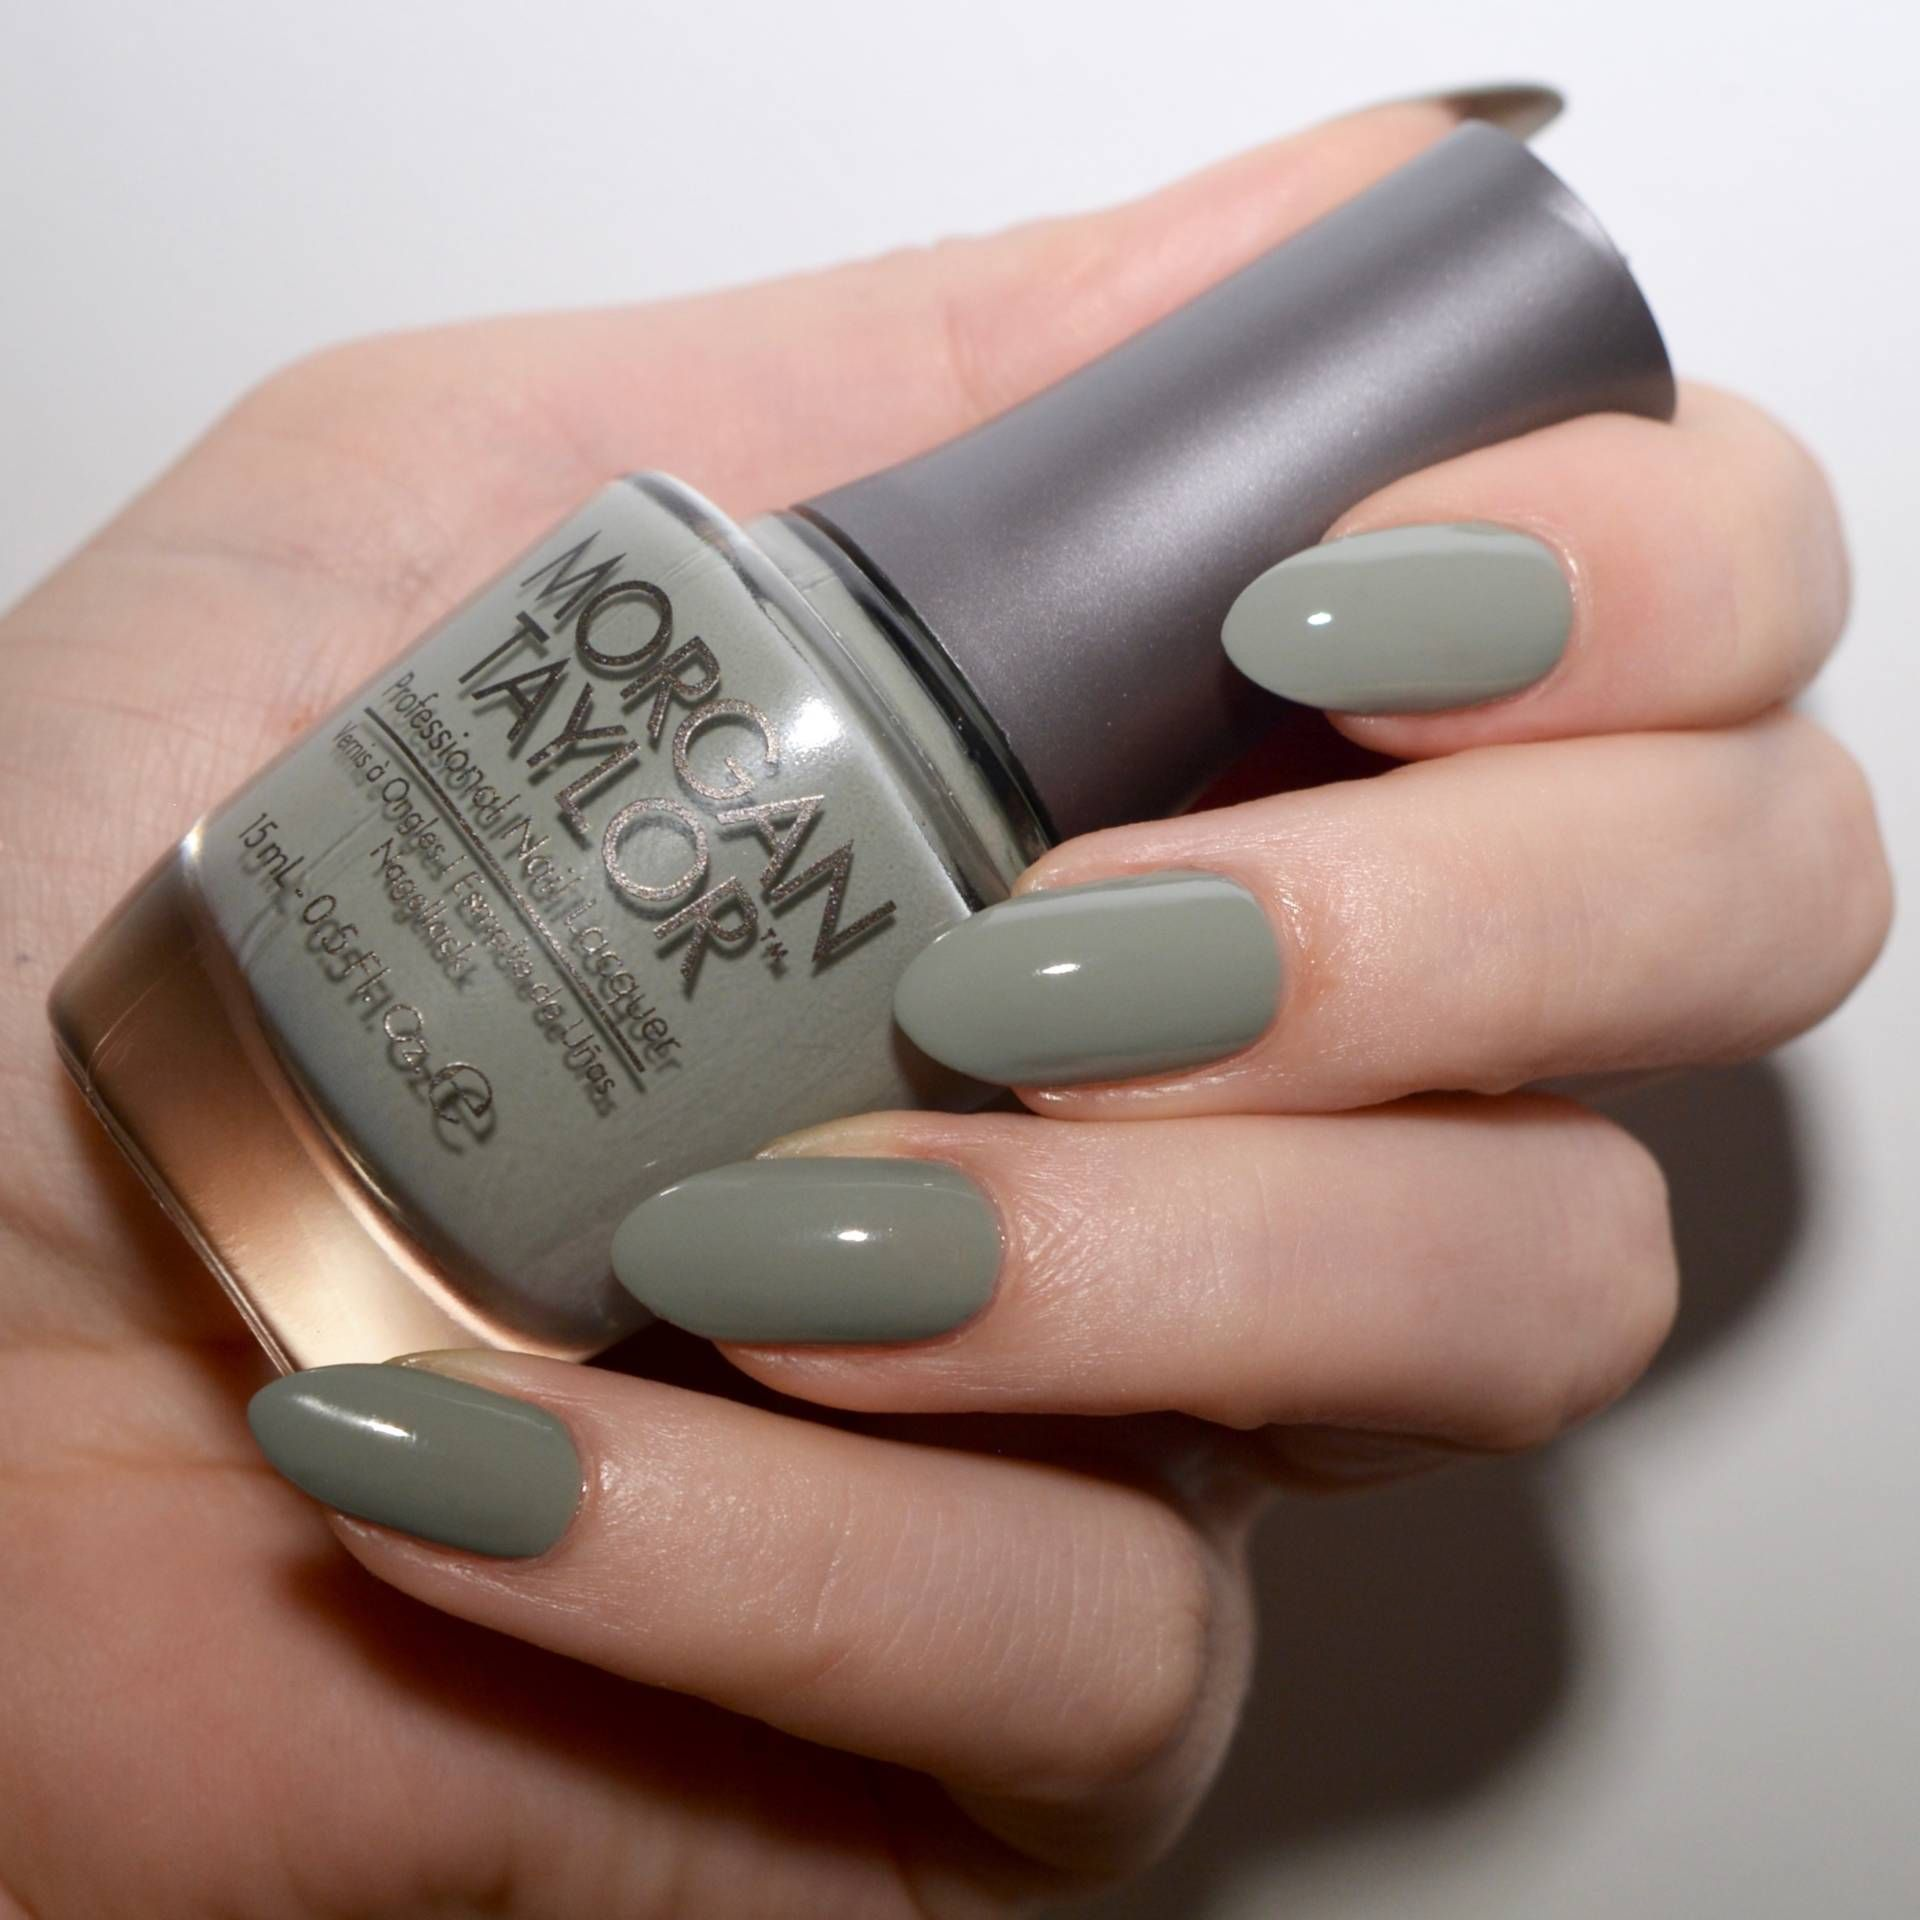 Muted Nail Trend with Morgan Taylor Polishes | Morgan taylor, Sage ...